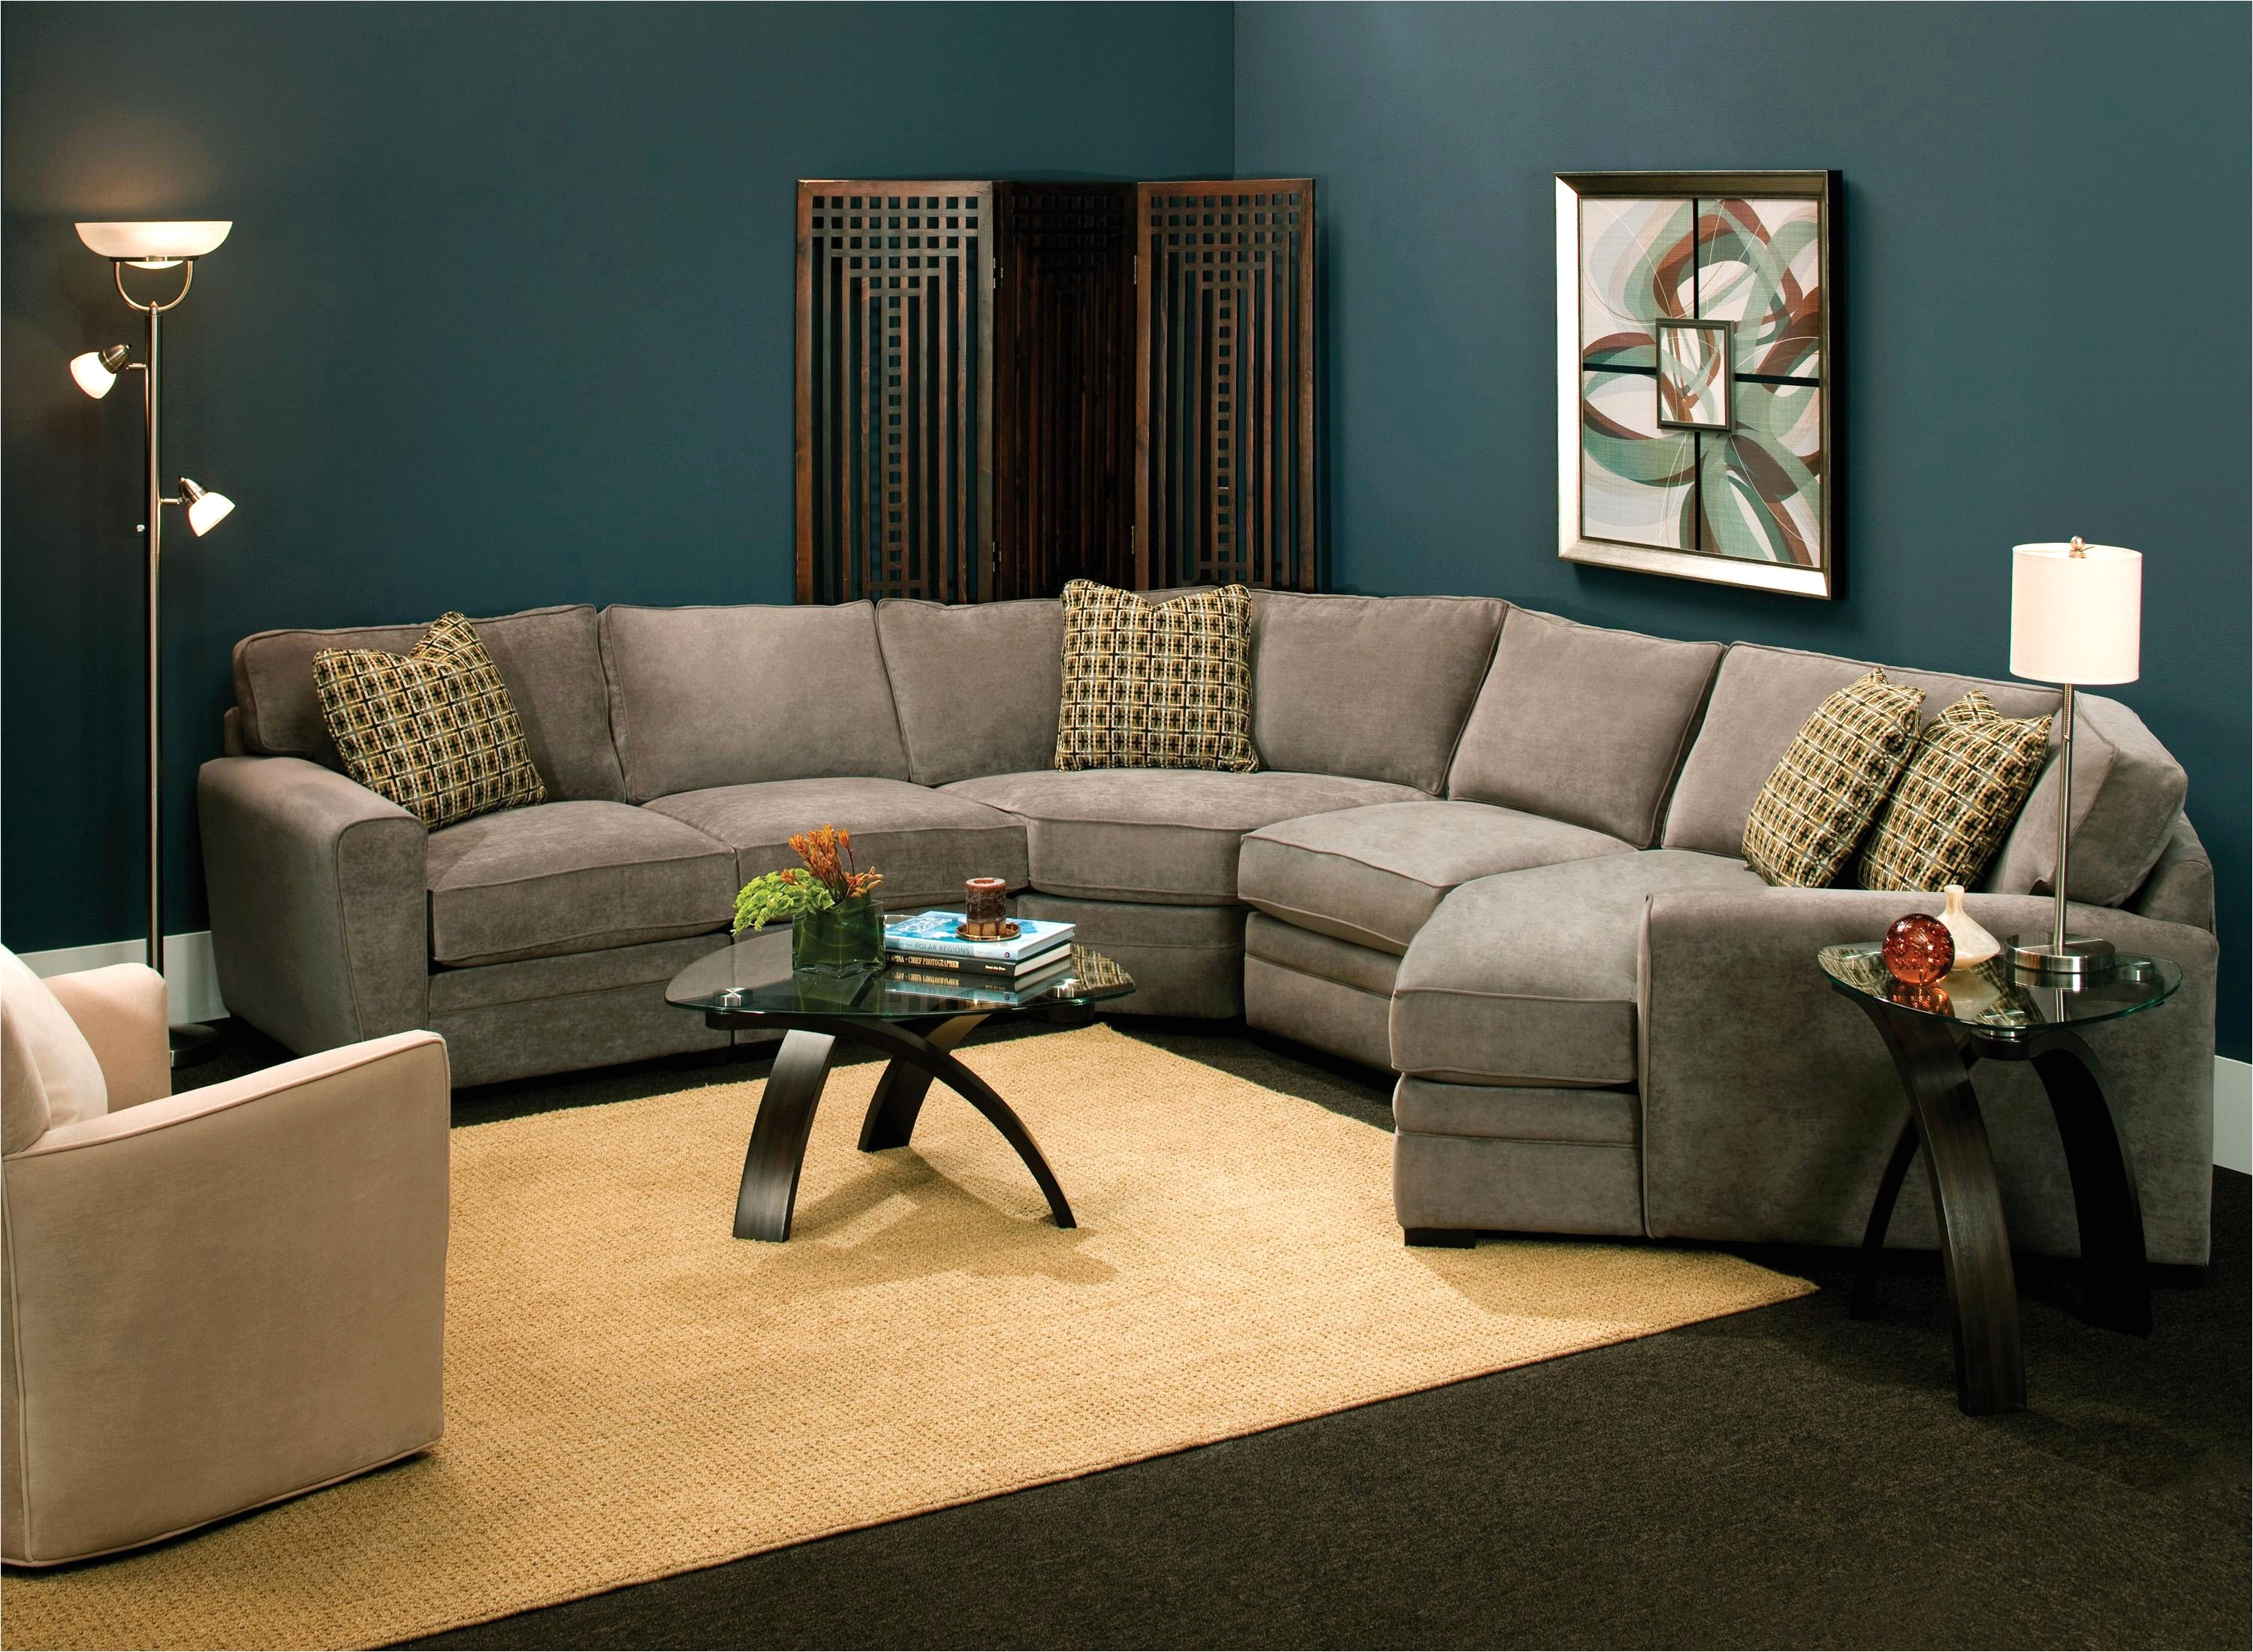 selling used furniture best furniture couch foam unique furniture rv couch luxury couch db 0d